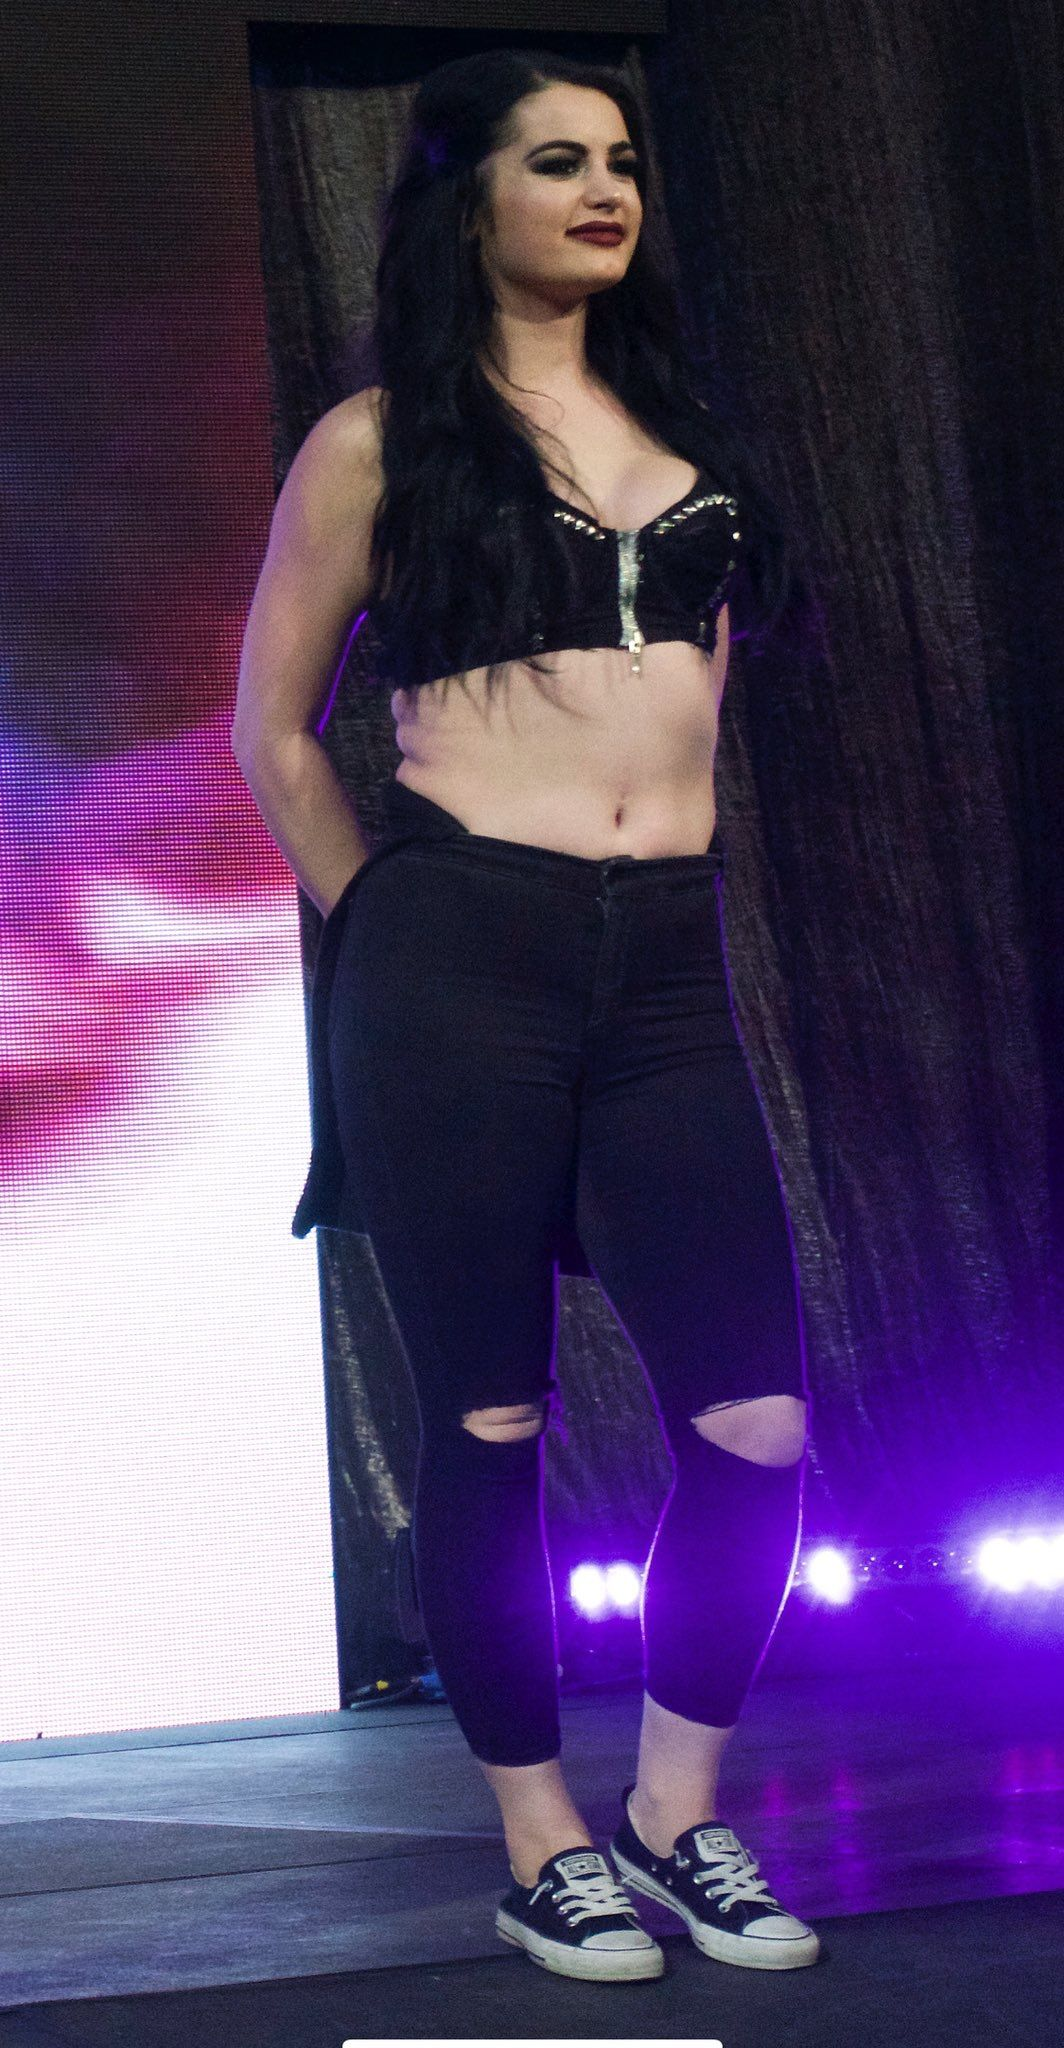 Pin By Aimee Morningstar On Wwe Wwe Divas Paige